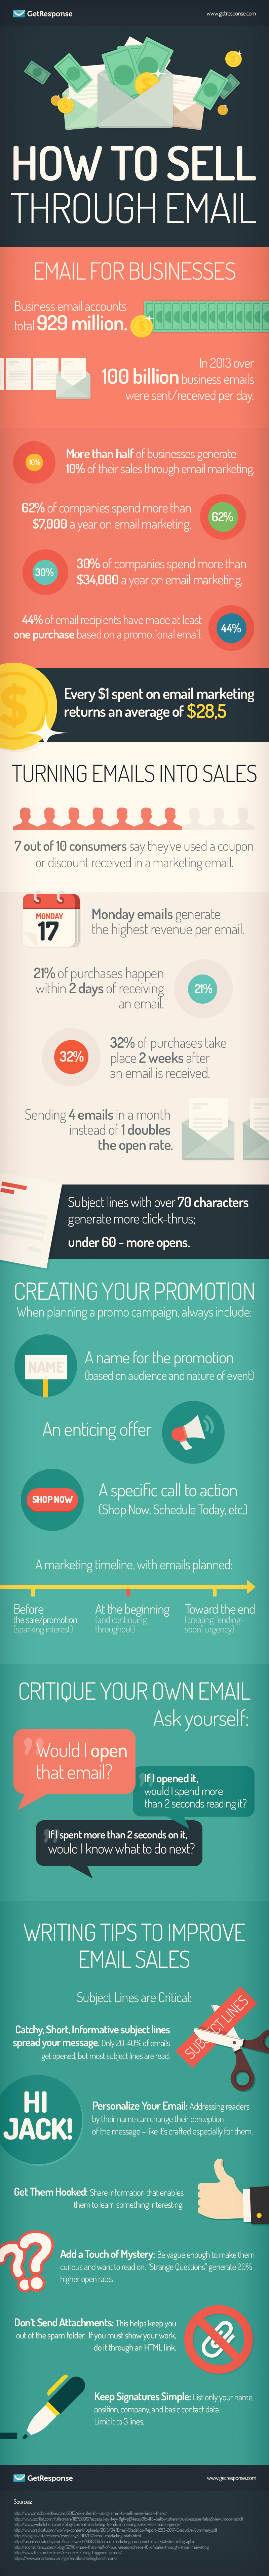 Infographic - How To Sell Through Email